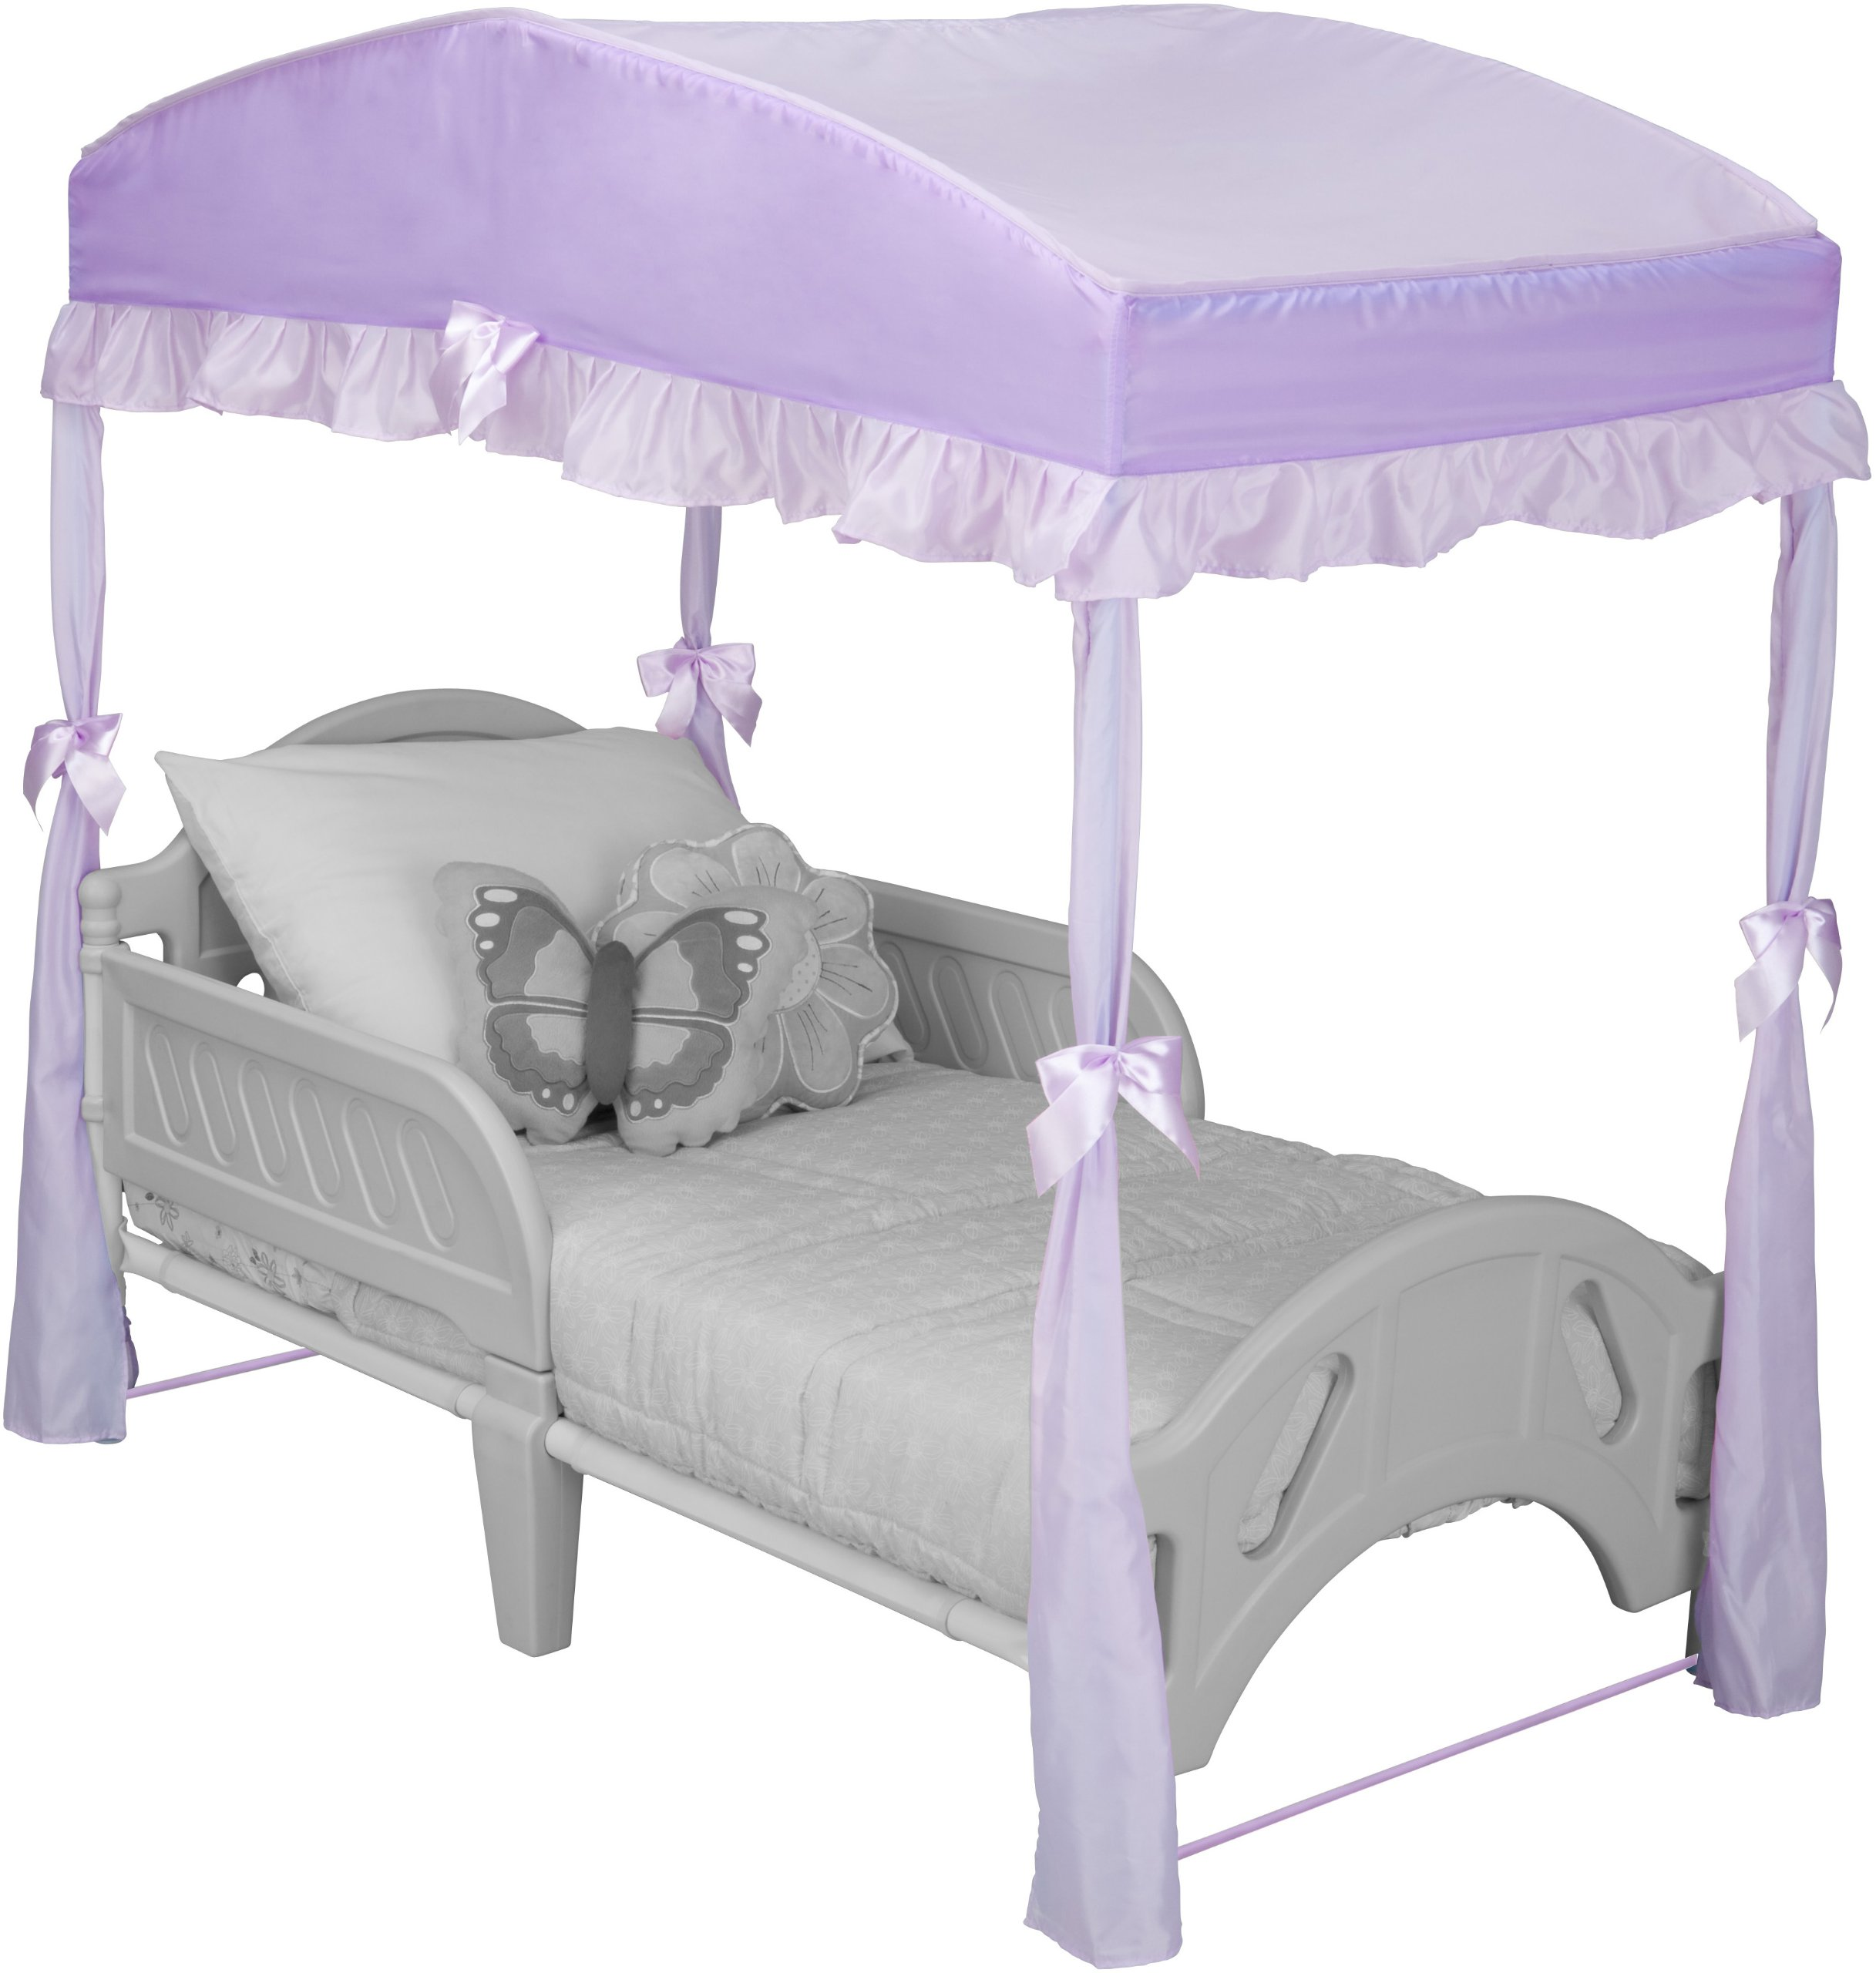 Delta Children Girls Canopy for Toddler Bed, Purple by Delta Children